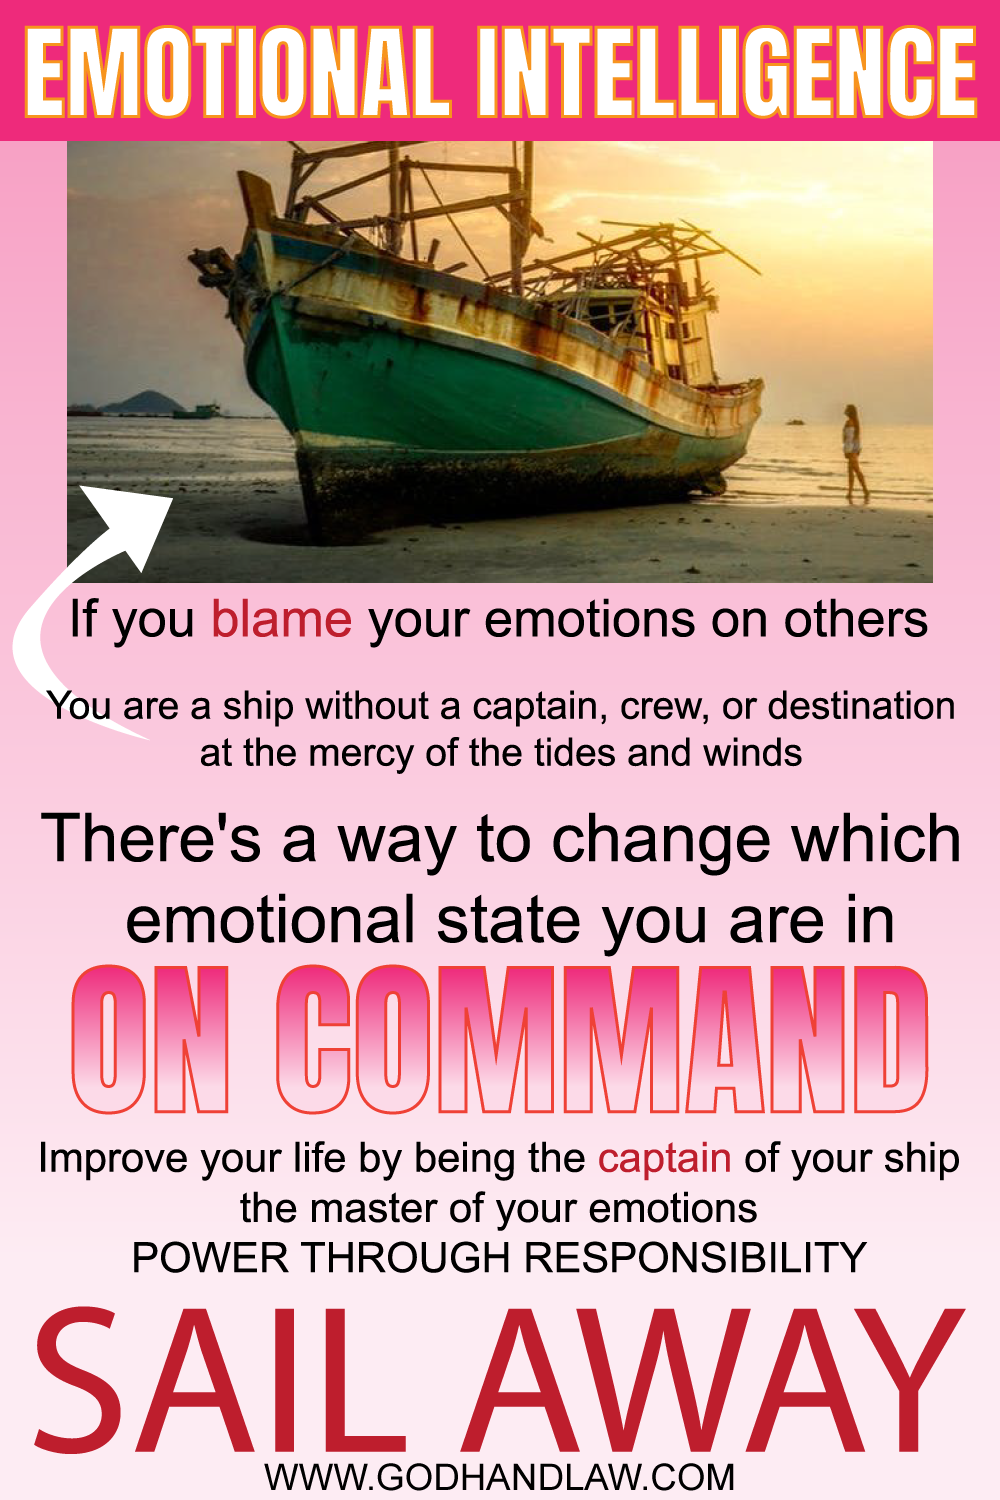 EMOTIONAL INTELLIGENCE CHANGE STATE ON COMMAND CAPTAIN OF YOUR SHIP EMOTIONAL MATURITY